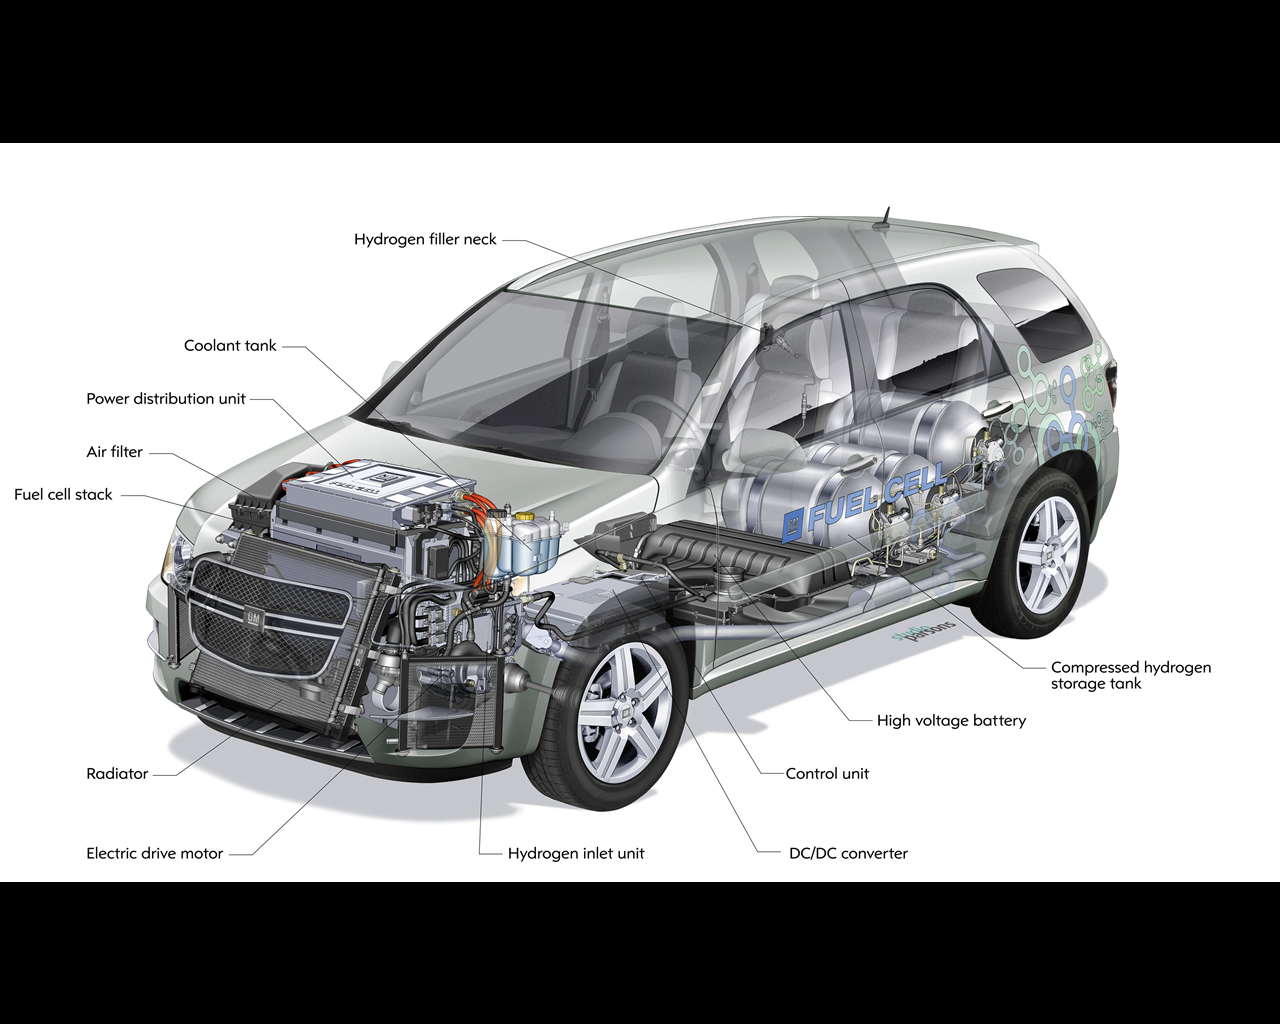 General Motors Hydrogen4 - Chevrolet Hydrogen Fuel Cell Equinox Prototypes  2008